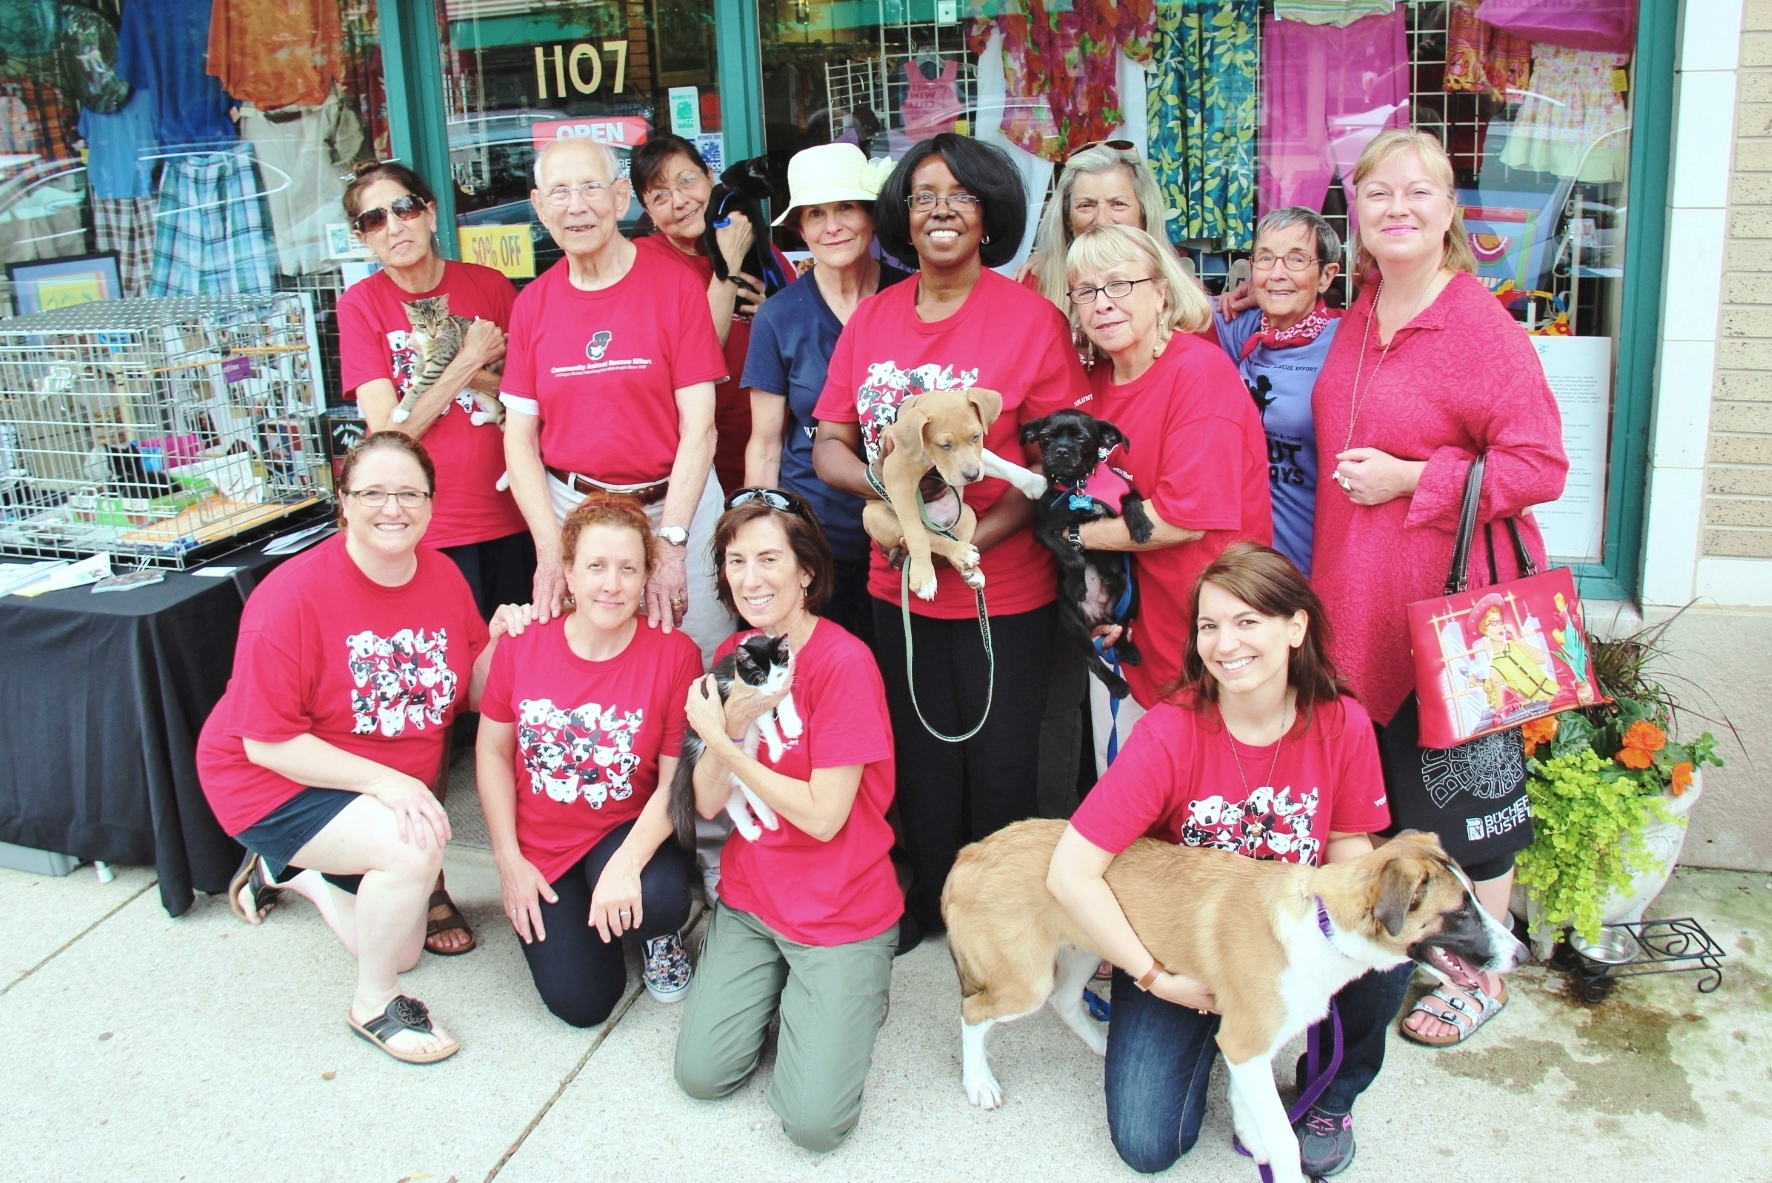 Pauline (back row, left) was an important part of the C.A.R.E. Red Shirt Crew that goes out into the community on weekends to find homes for homeless animals.